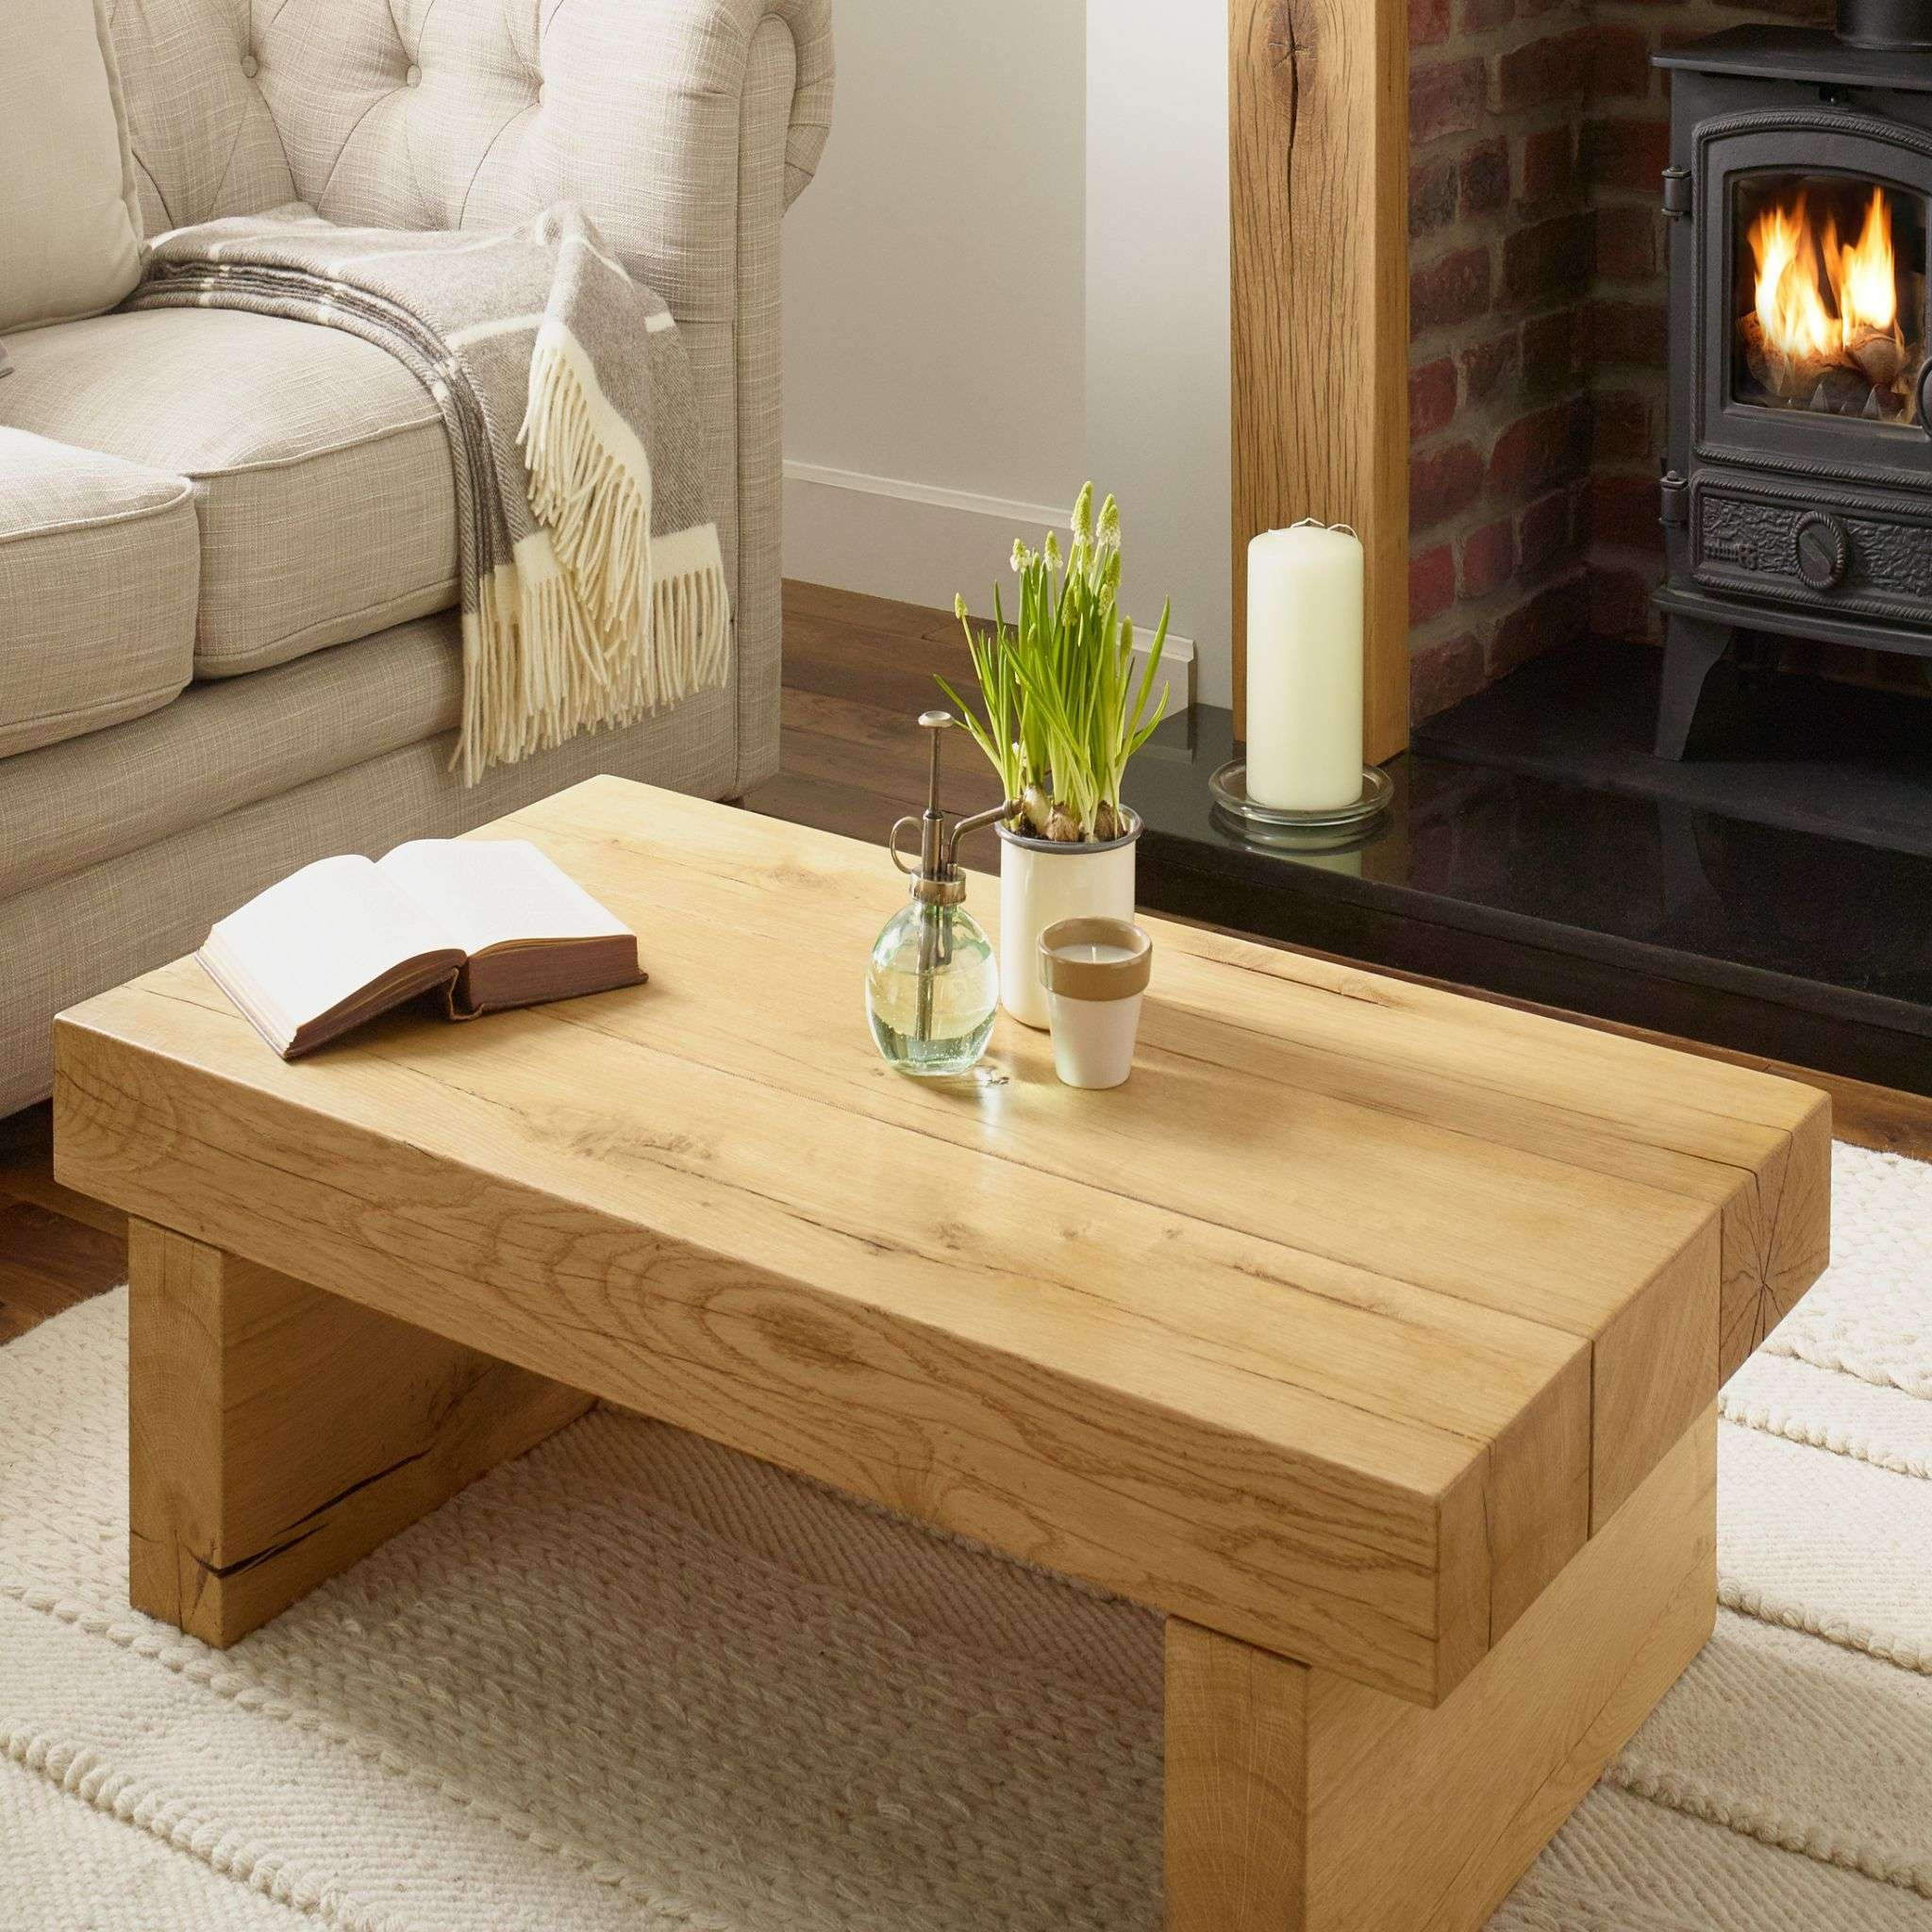 Oak Coffee Table Oxford Solid French Rustic Beam Regarding Recent Solid Oak Beam Coffee Table (View 11 of 20)